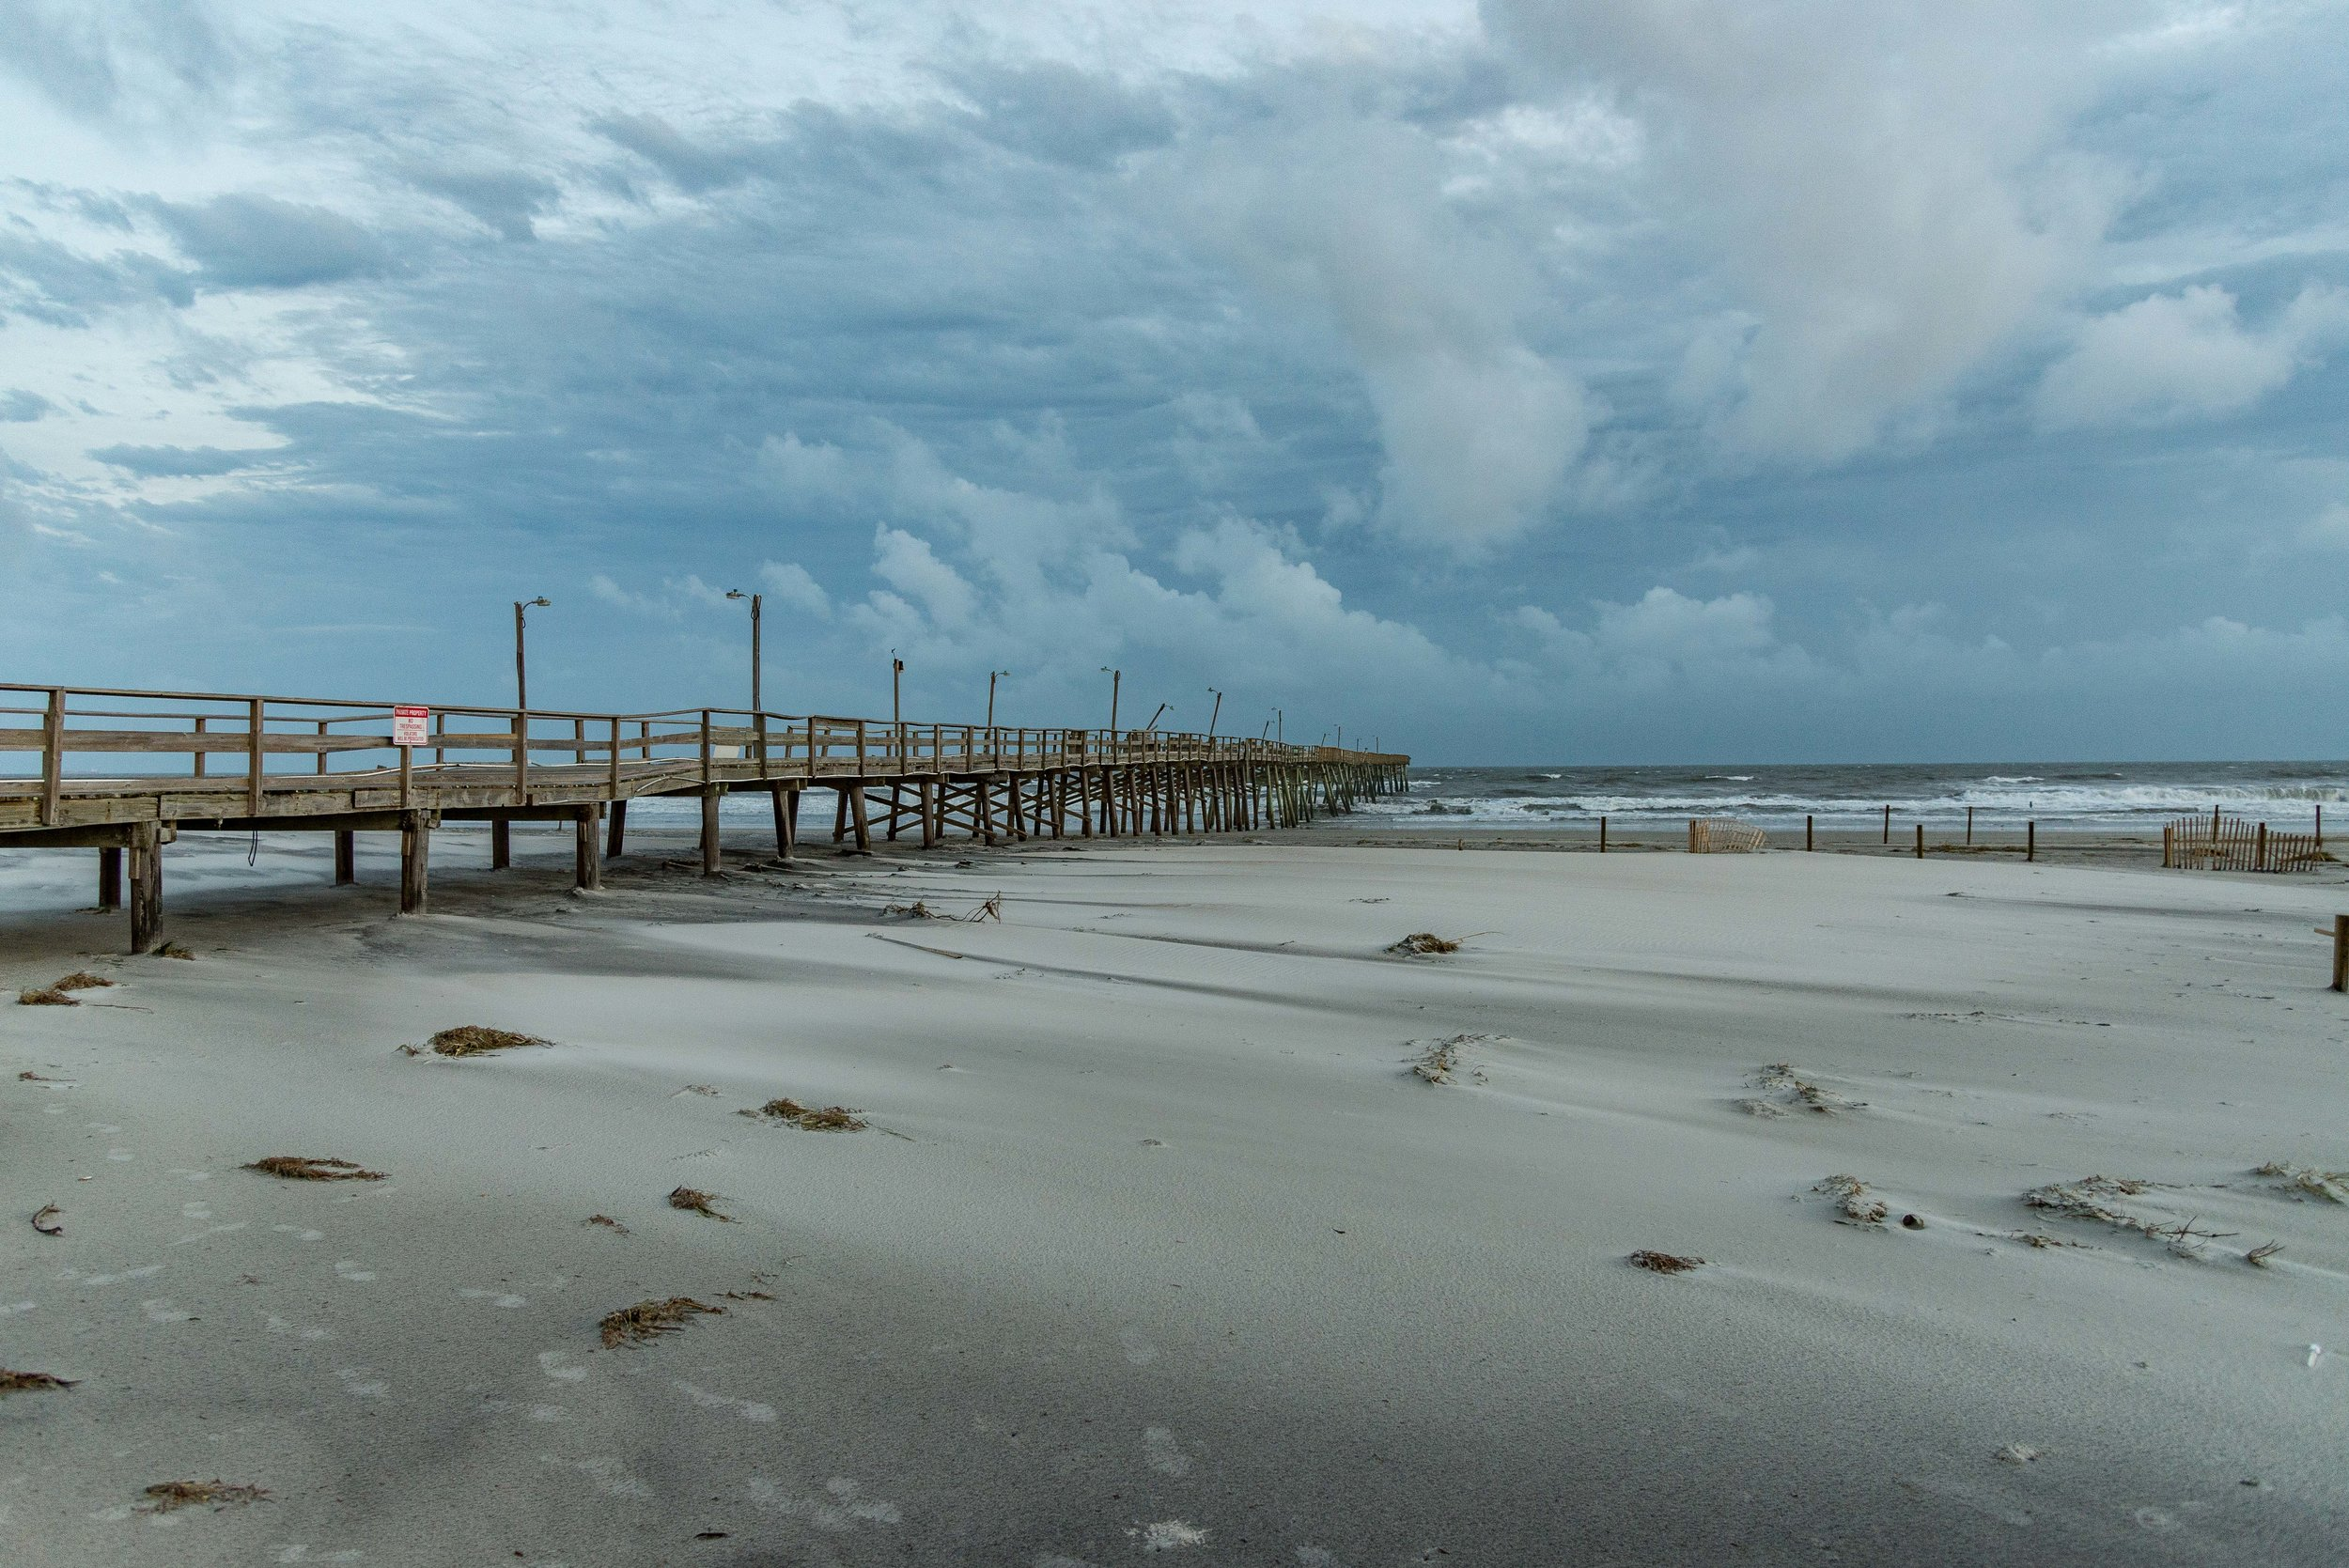 September 16, 2018, Atlantic Beach, NC- Oceanana Pier at Atlantic Beach suffers damage from Hurricane Florence.